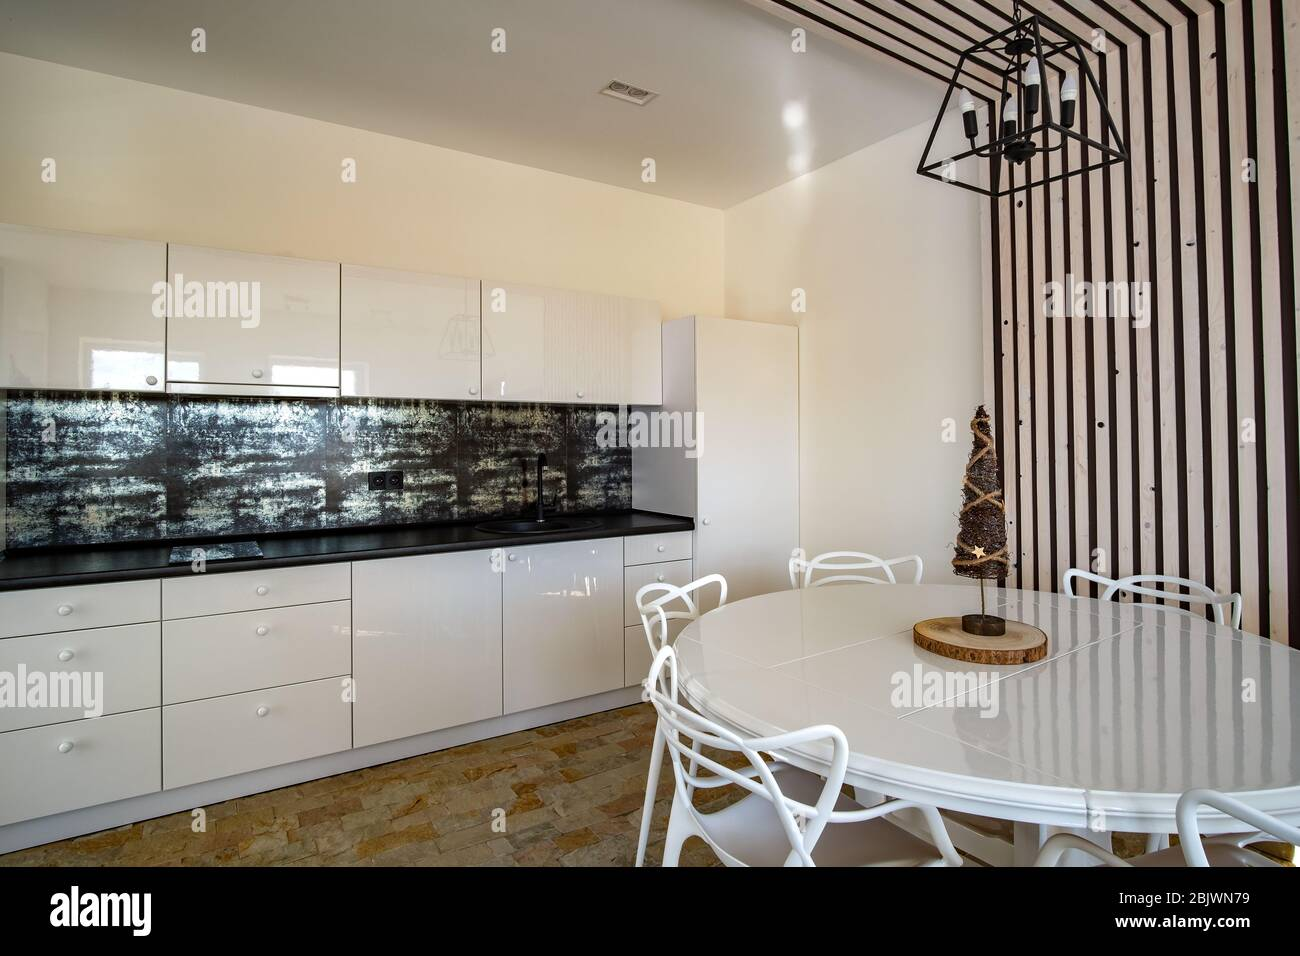 Interior Of Modern Spacious Kitchen With White Walls Decorative Wooden Elements Contemporary Furniture And Big Soft Couch Stock Photo Alamy